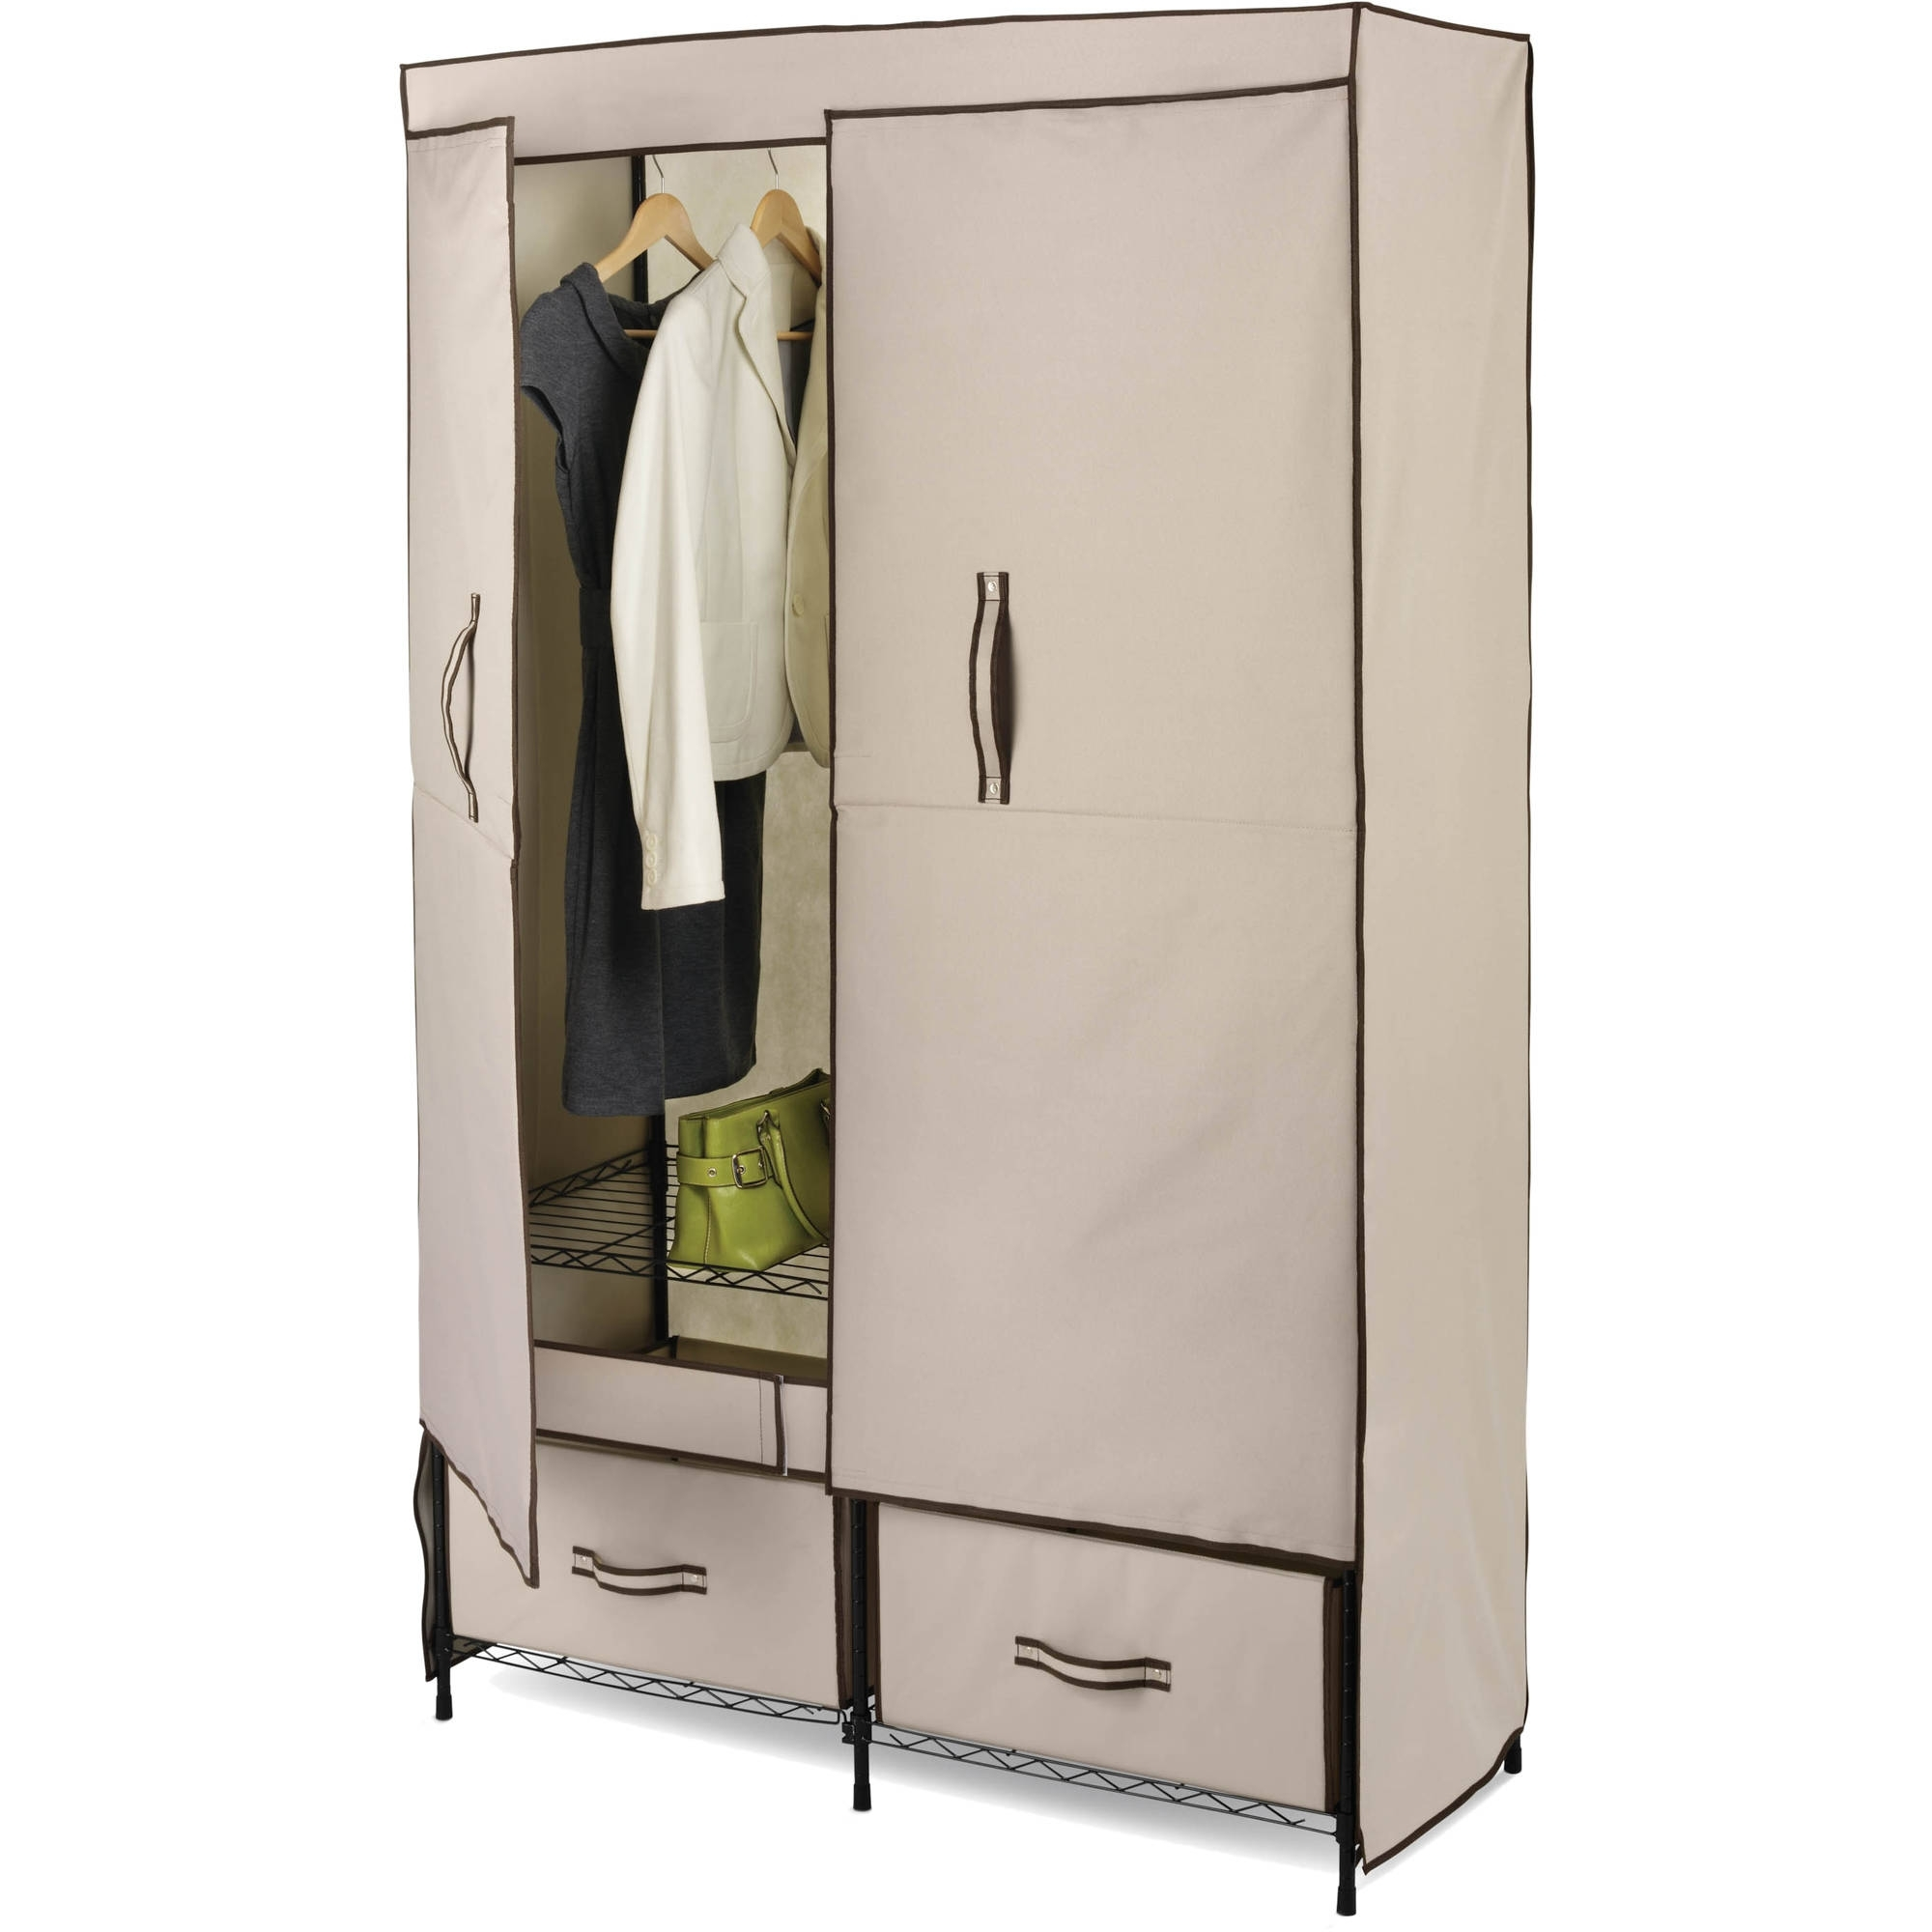 Popular Honey Can Do Double Door Closet Storage With Two Drawers, Beige In Cheap Double Wardrobes (View 7 of 15)